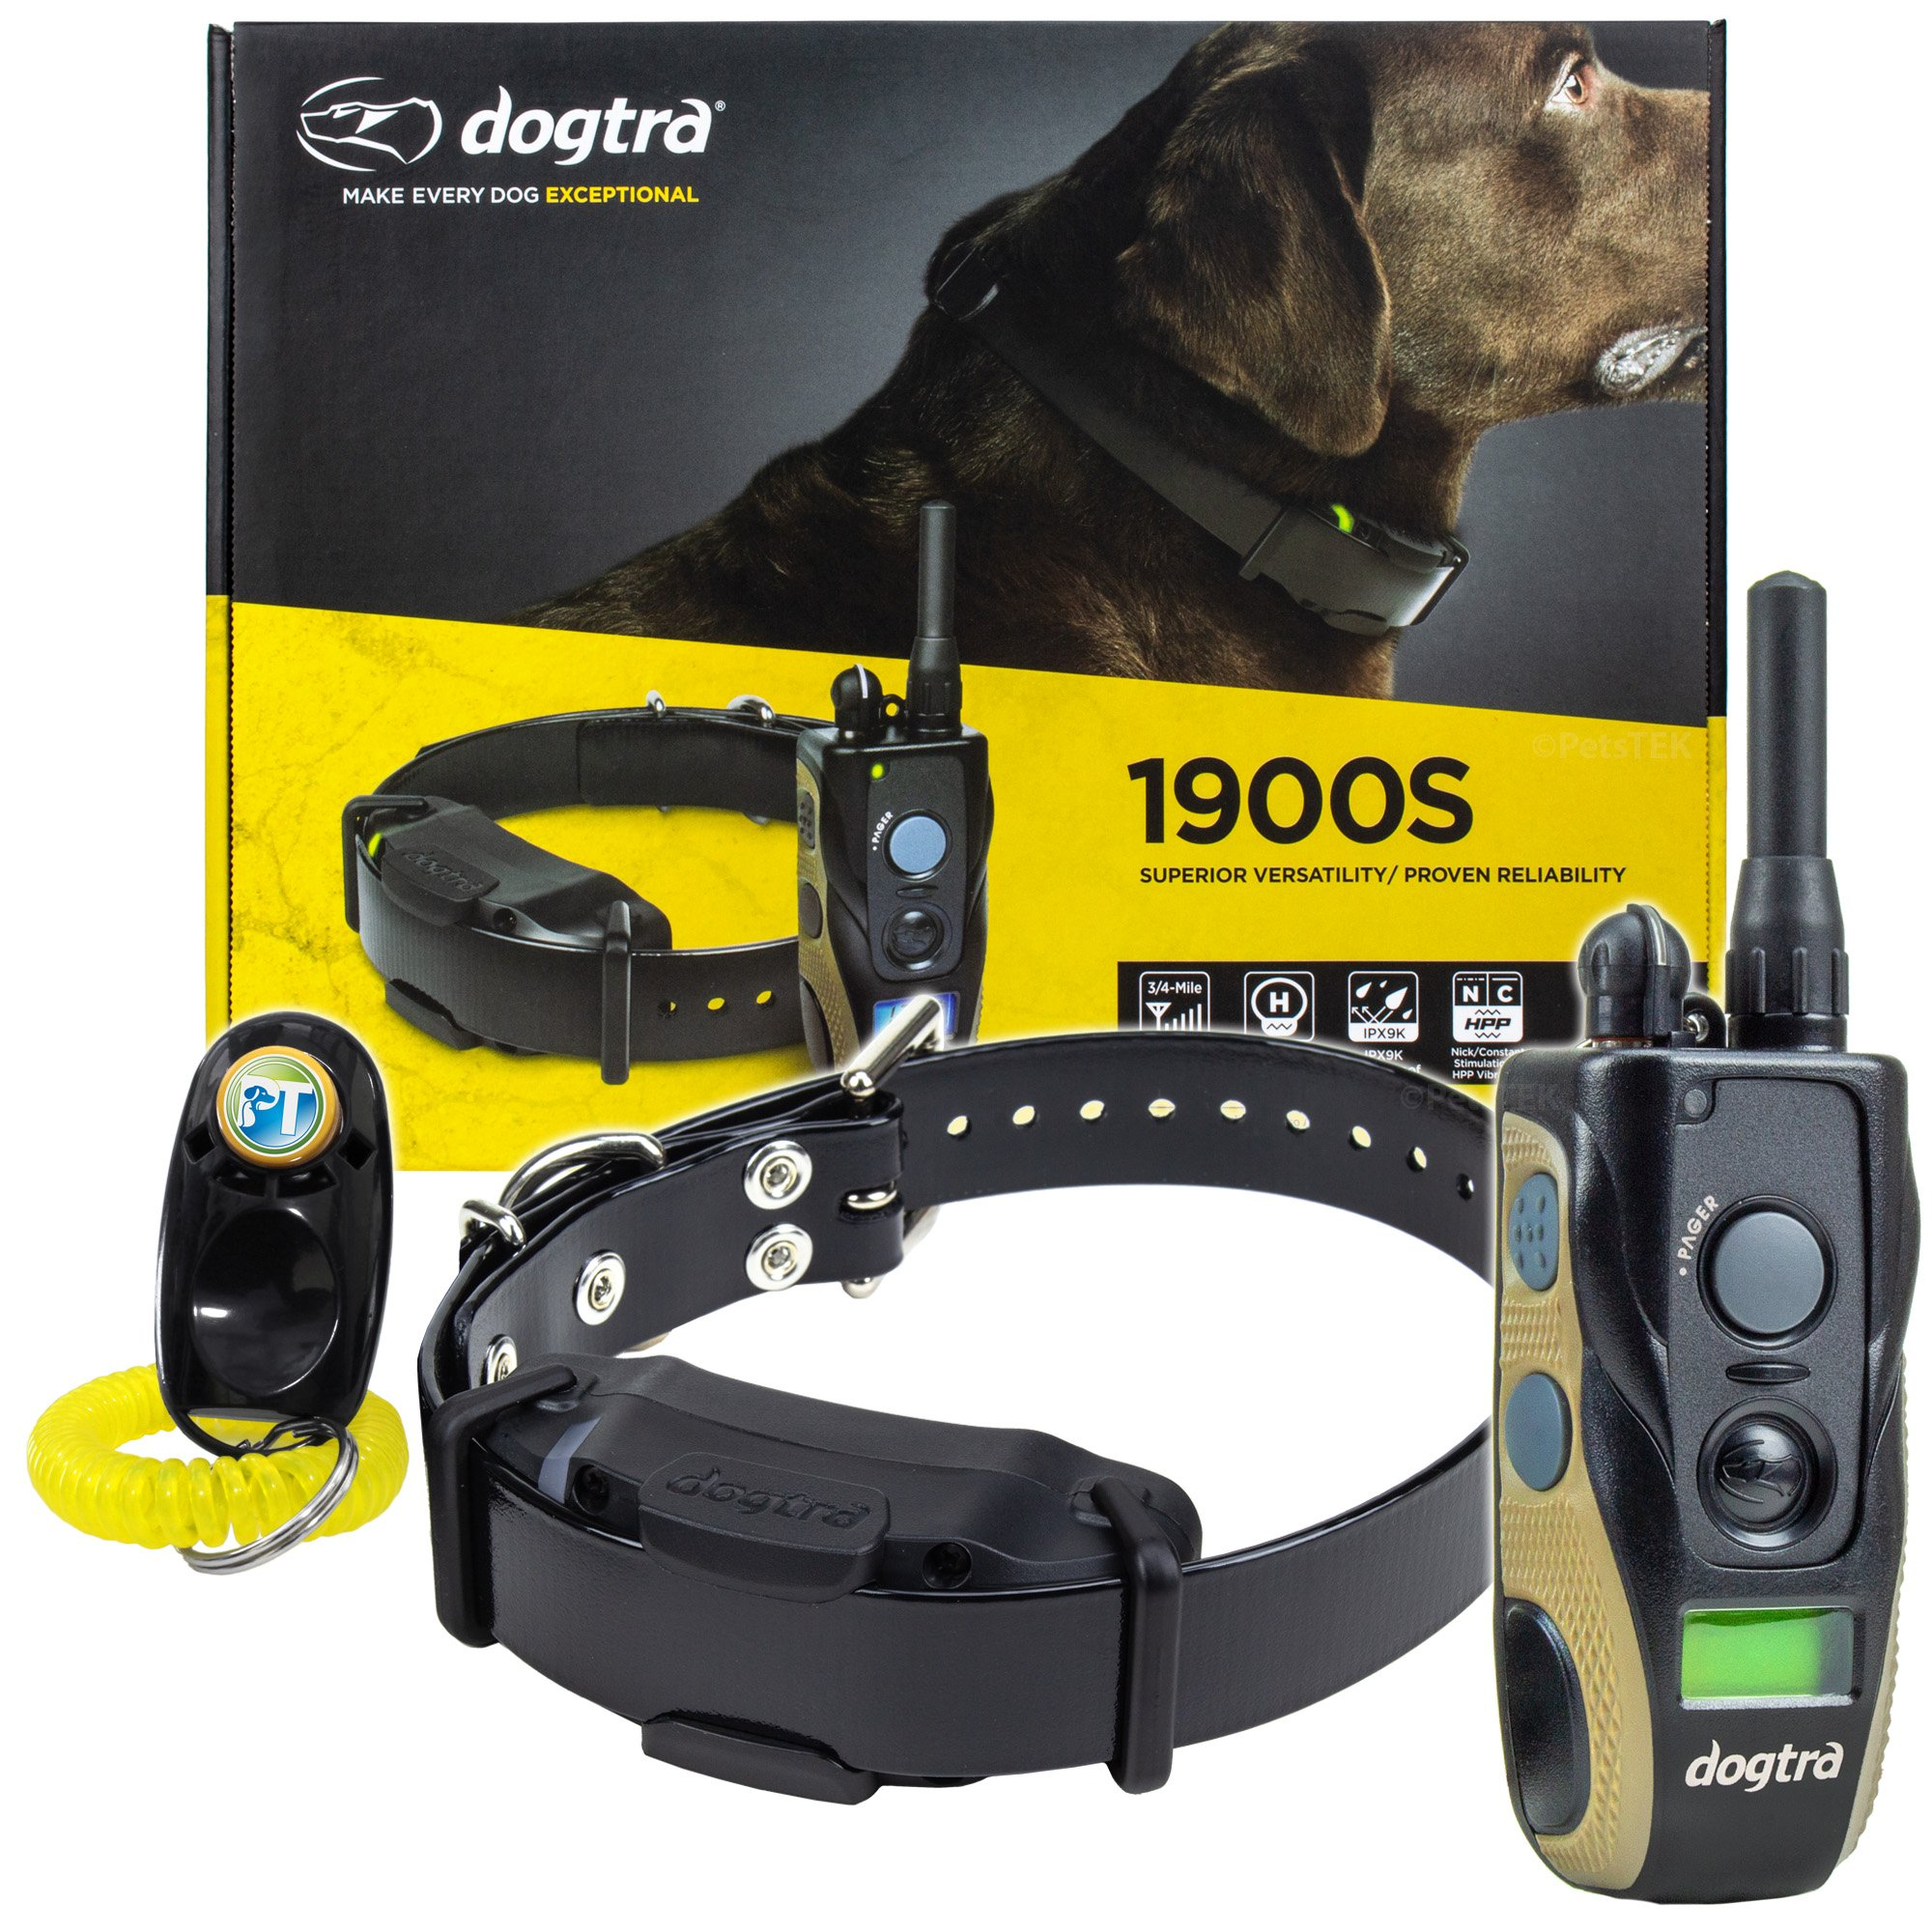 Dogtra 1900S / 1902S Remote Training Collar – 3/4 Mile Range, Waterproof, Rechargeable, Vibration – Includes PetsTEK Dog Training Clicker